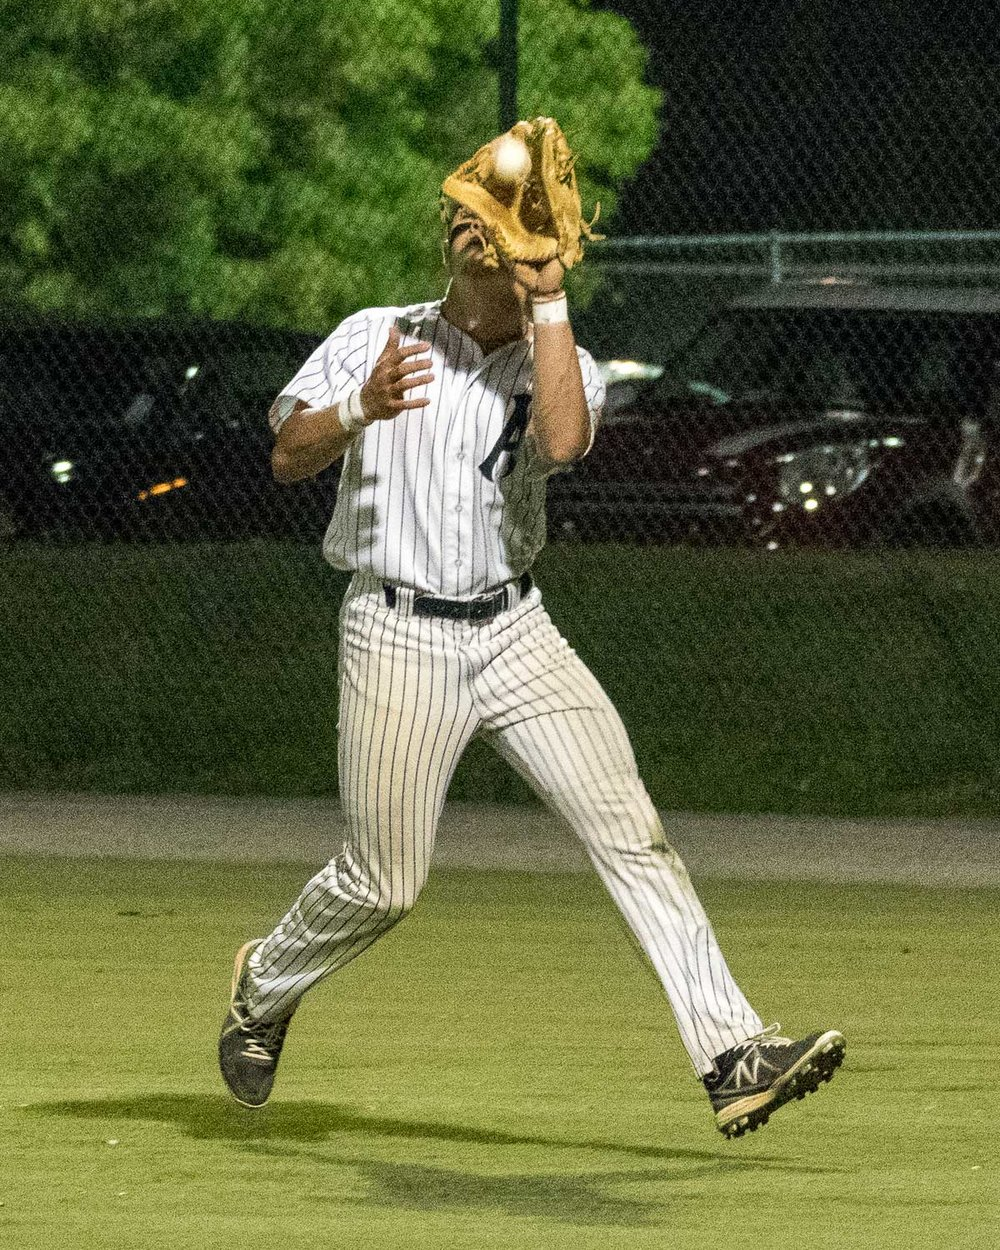 20160707 - DC Grays vs Aces-2834.jpg